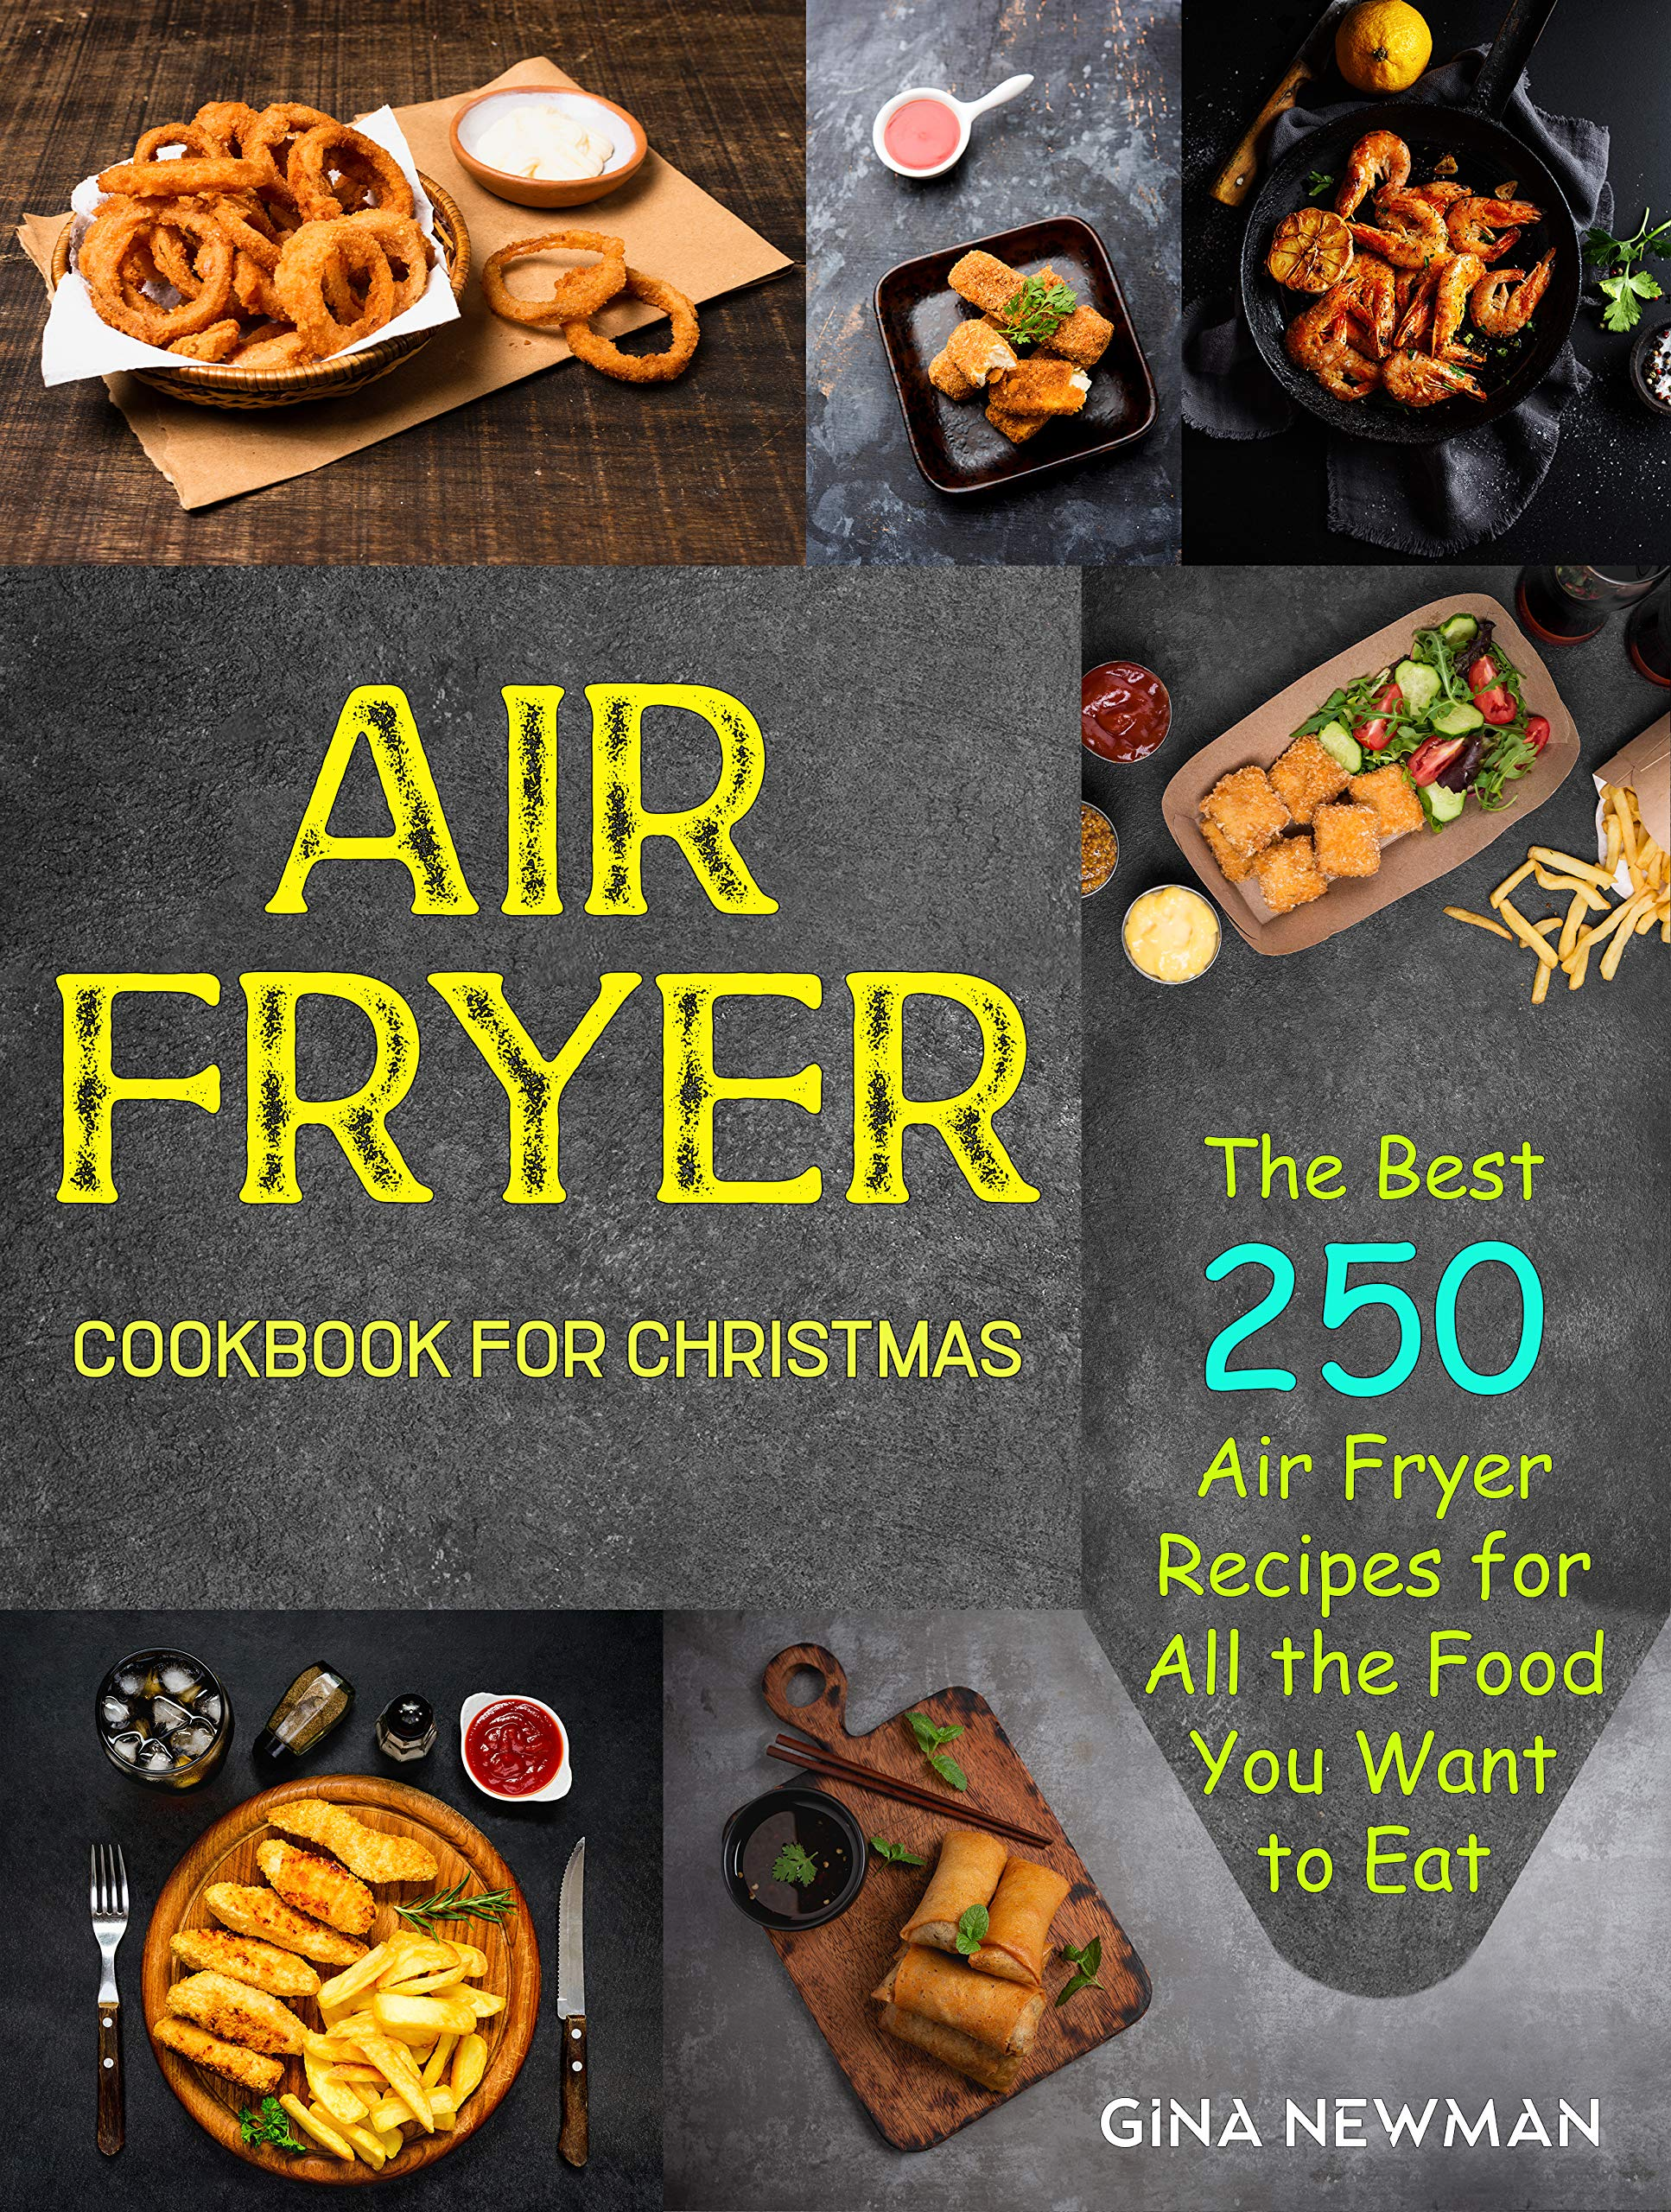 Air Fryer Cookbook For Christmas: The Best 250 Air Fryer Recipes for All the Food You Want to Eat